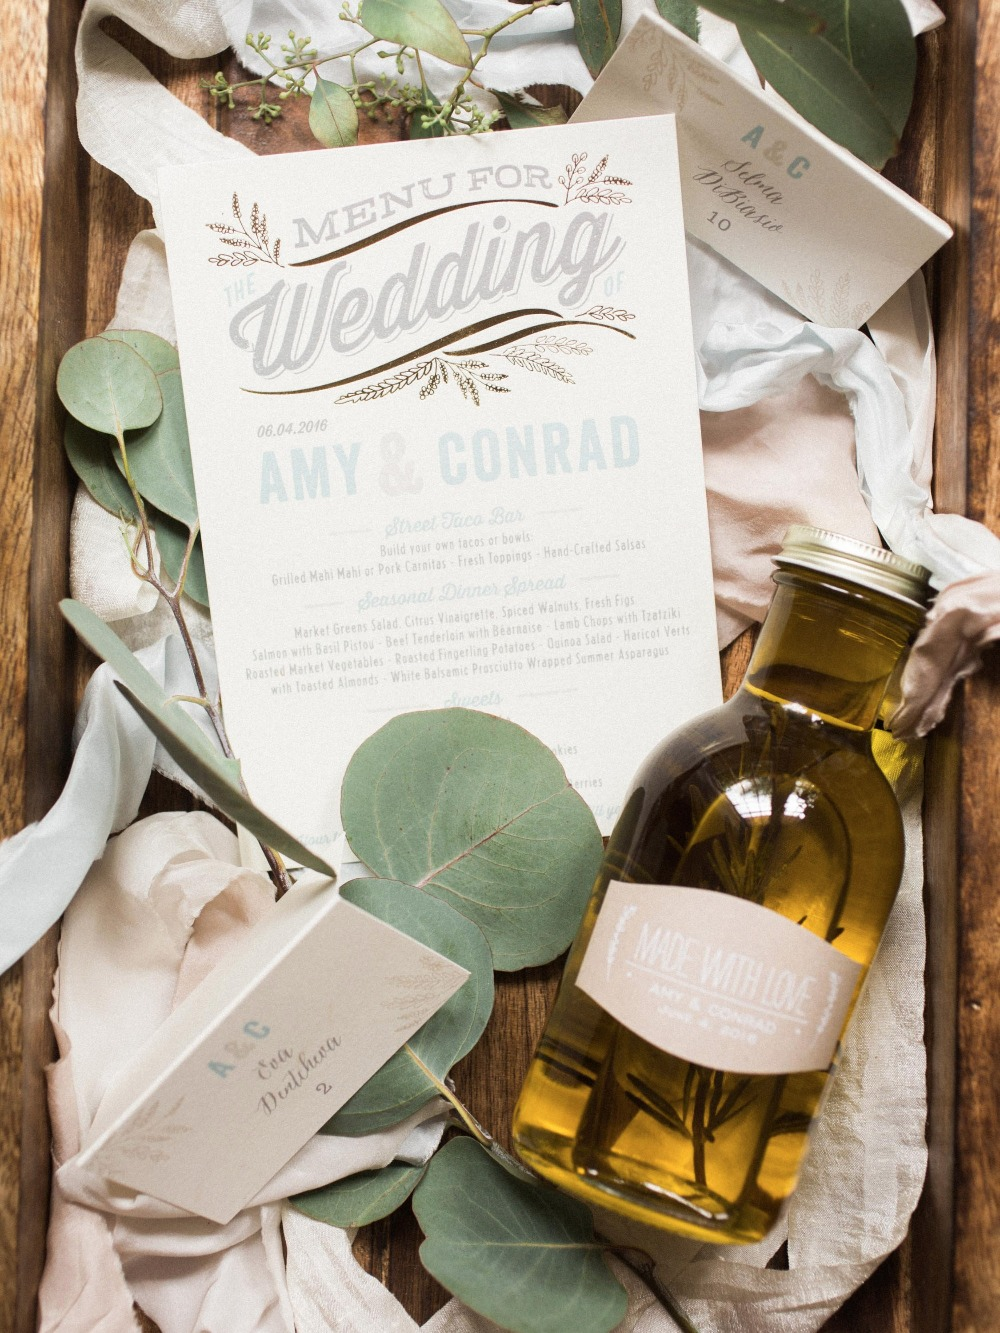 Wedding invite and olive oil wedding favor